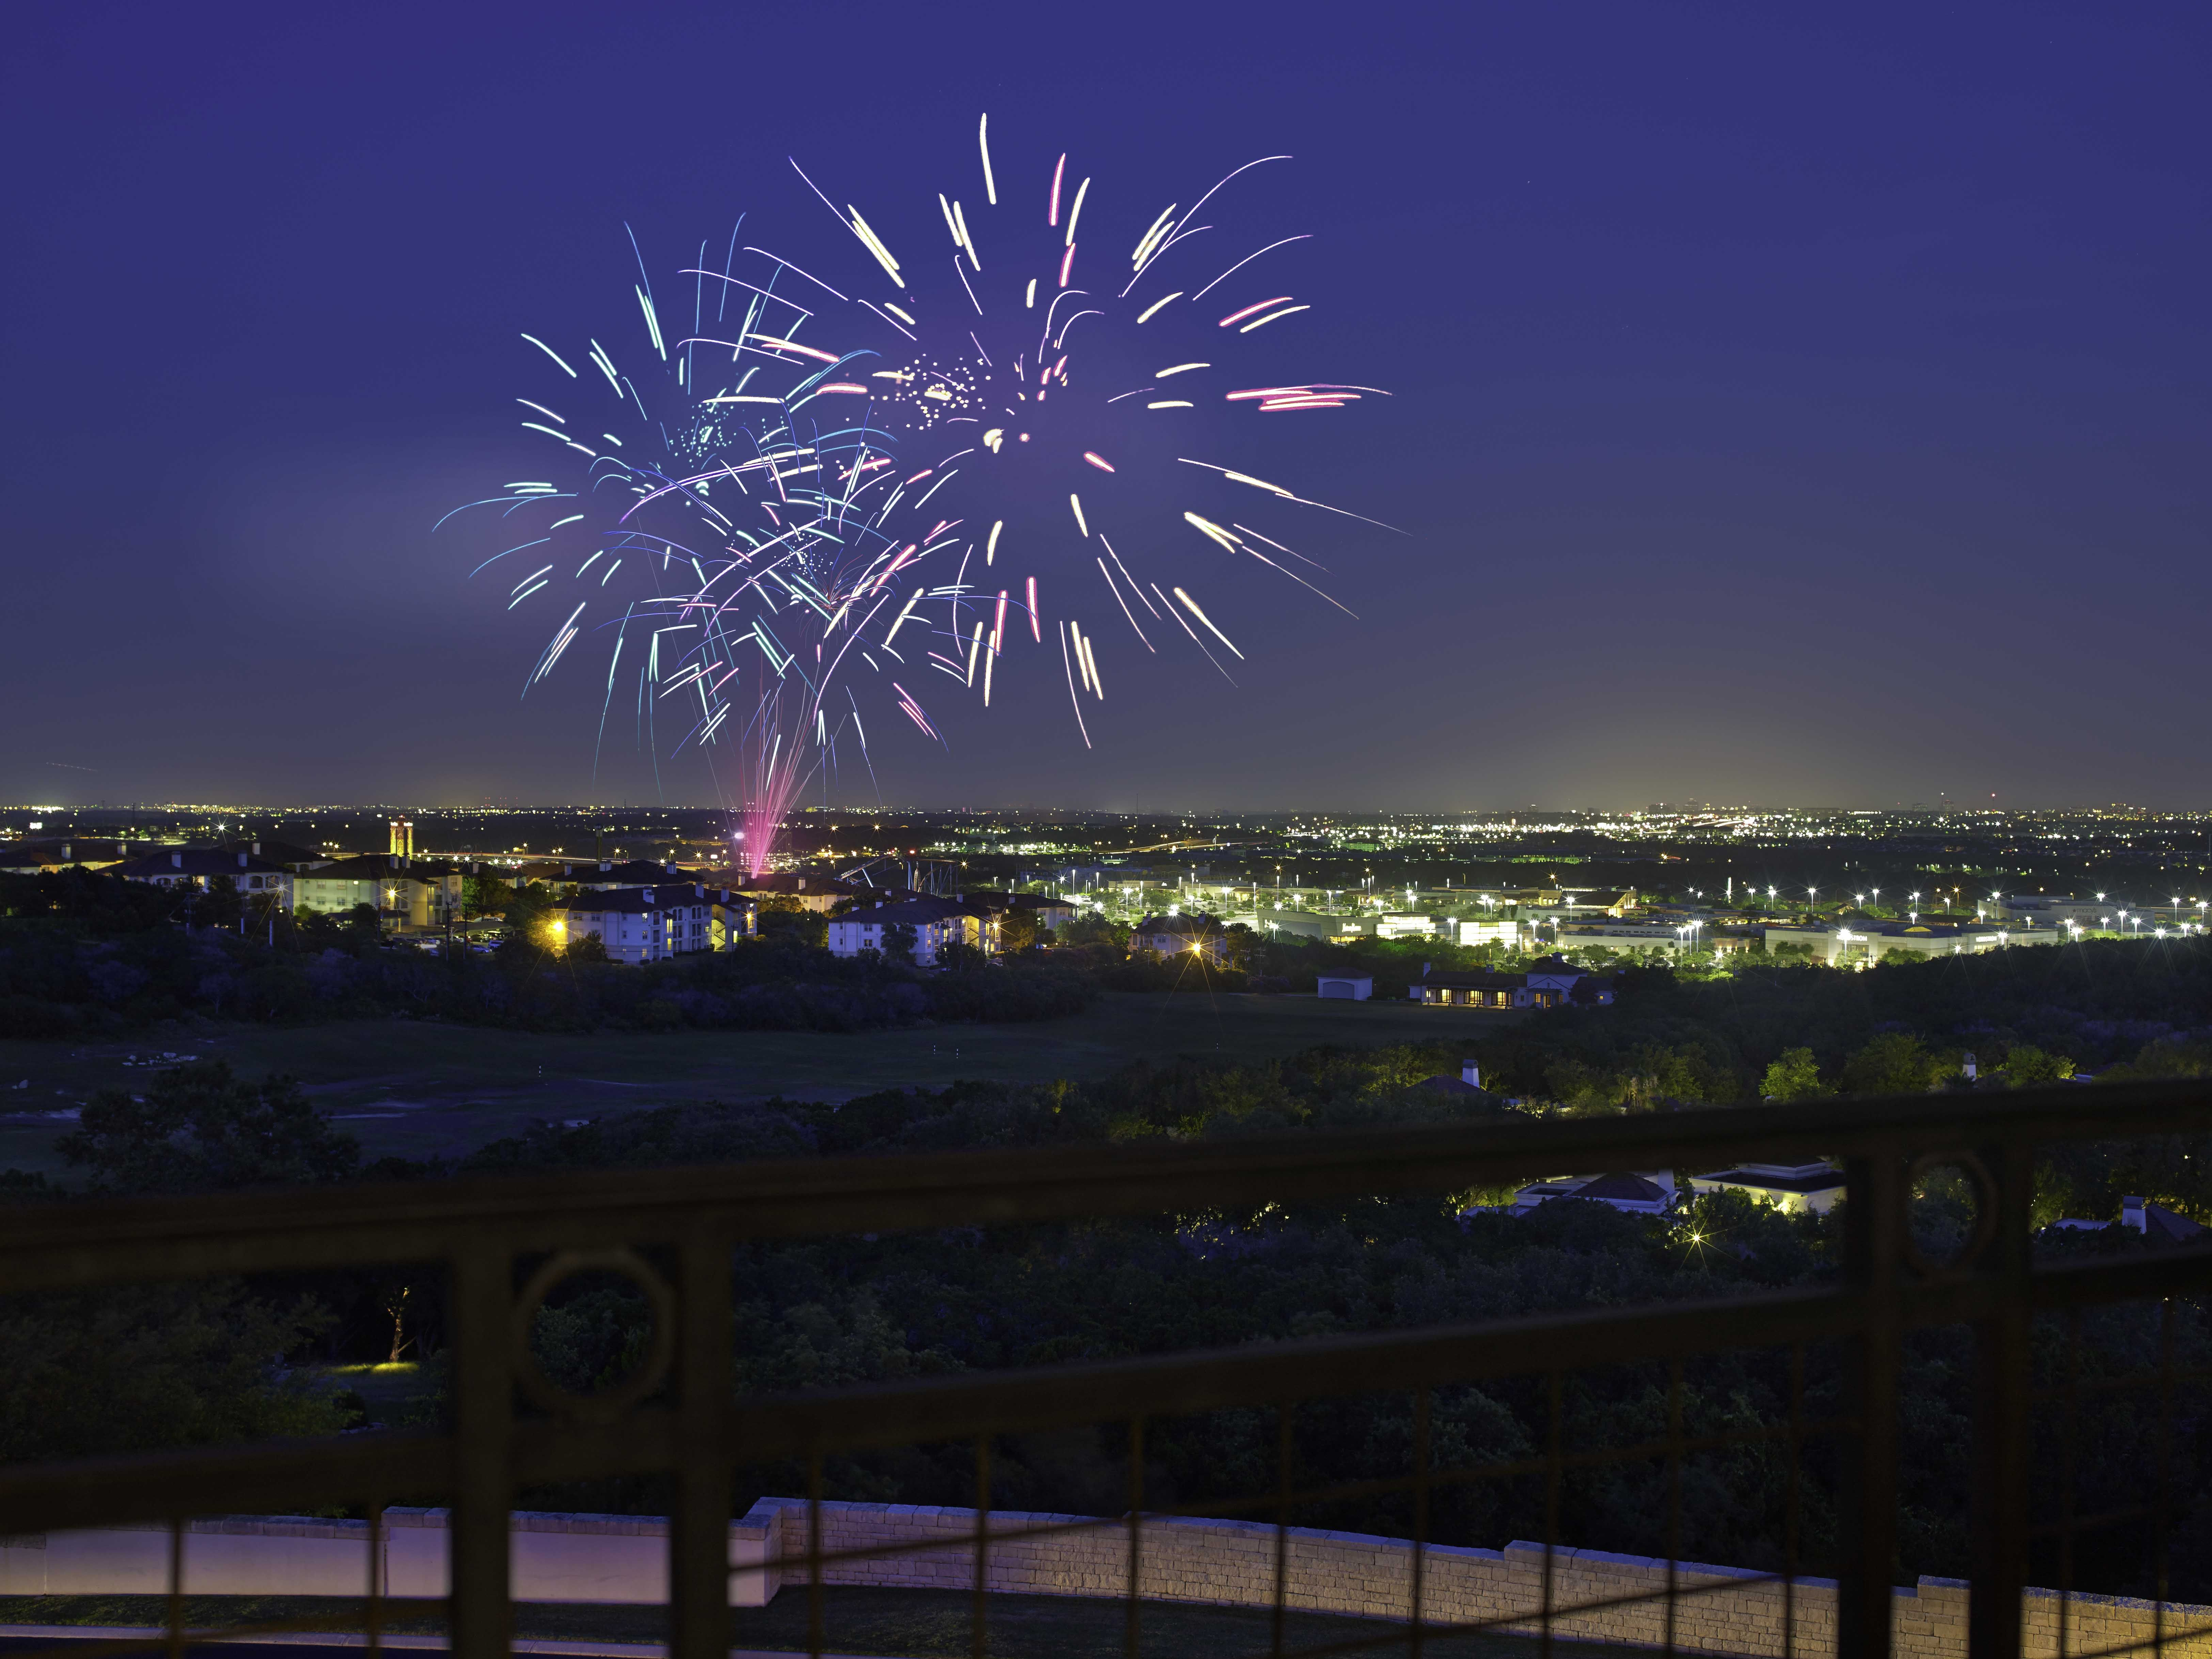 View Of Fireworks From Six Flags Fiesta Texas From La Cantera Hill Country Resort Lacantera Resort Hill Country Resort San Antonio Photography Travel Dreams